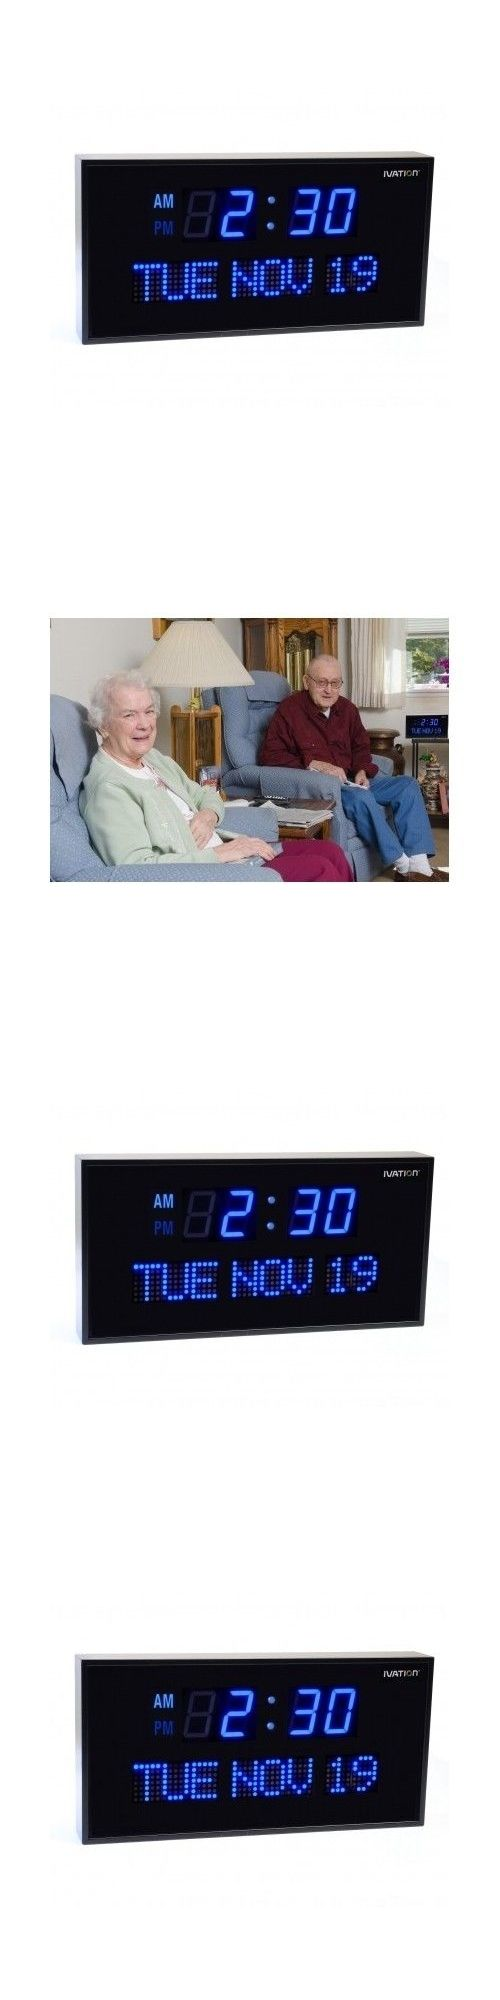 Wall Clocks 20561: Large Lighted Clock 16 Digital Blue Oversized Led Wall Bright Display Seniors -> BUY IT NOW ONLY: $92.77 on eBay!